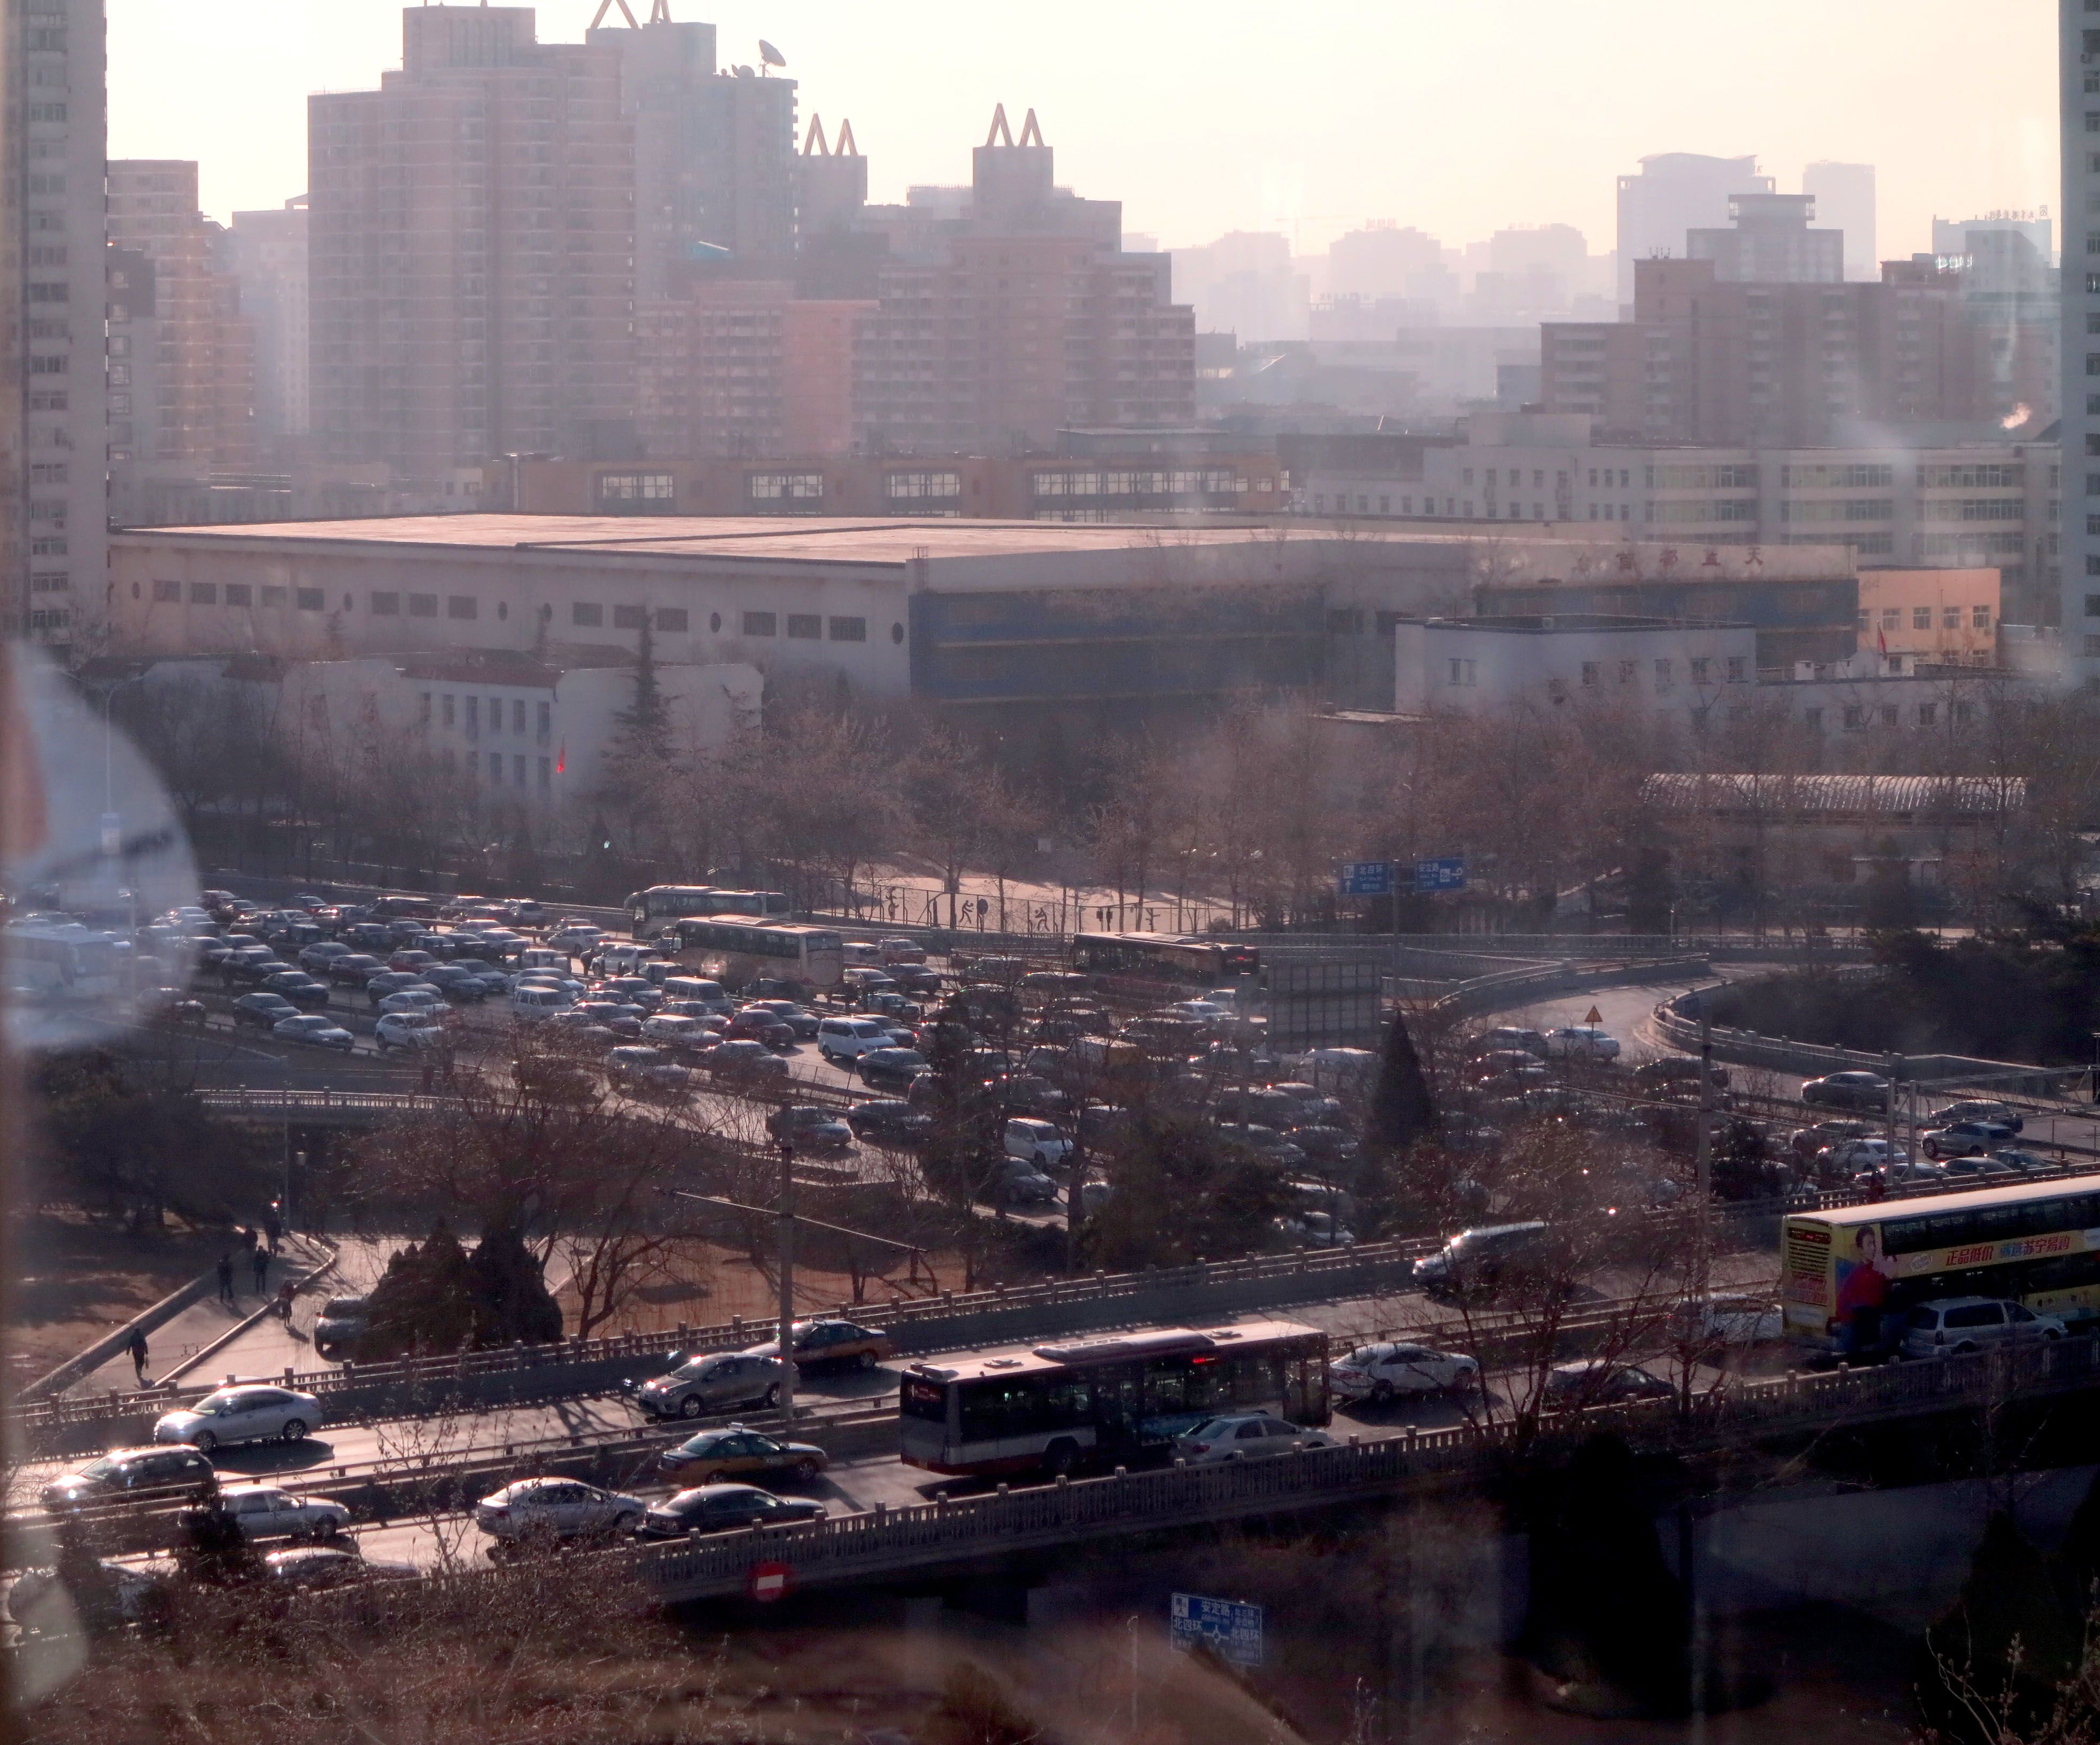 Beijing traffic clogs the 4th Ring Road, contributing to the smog. (Jock Lauterer photo)